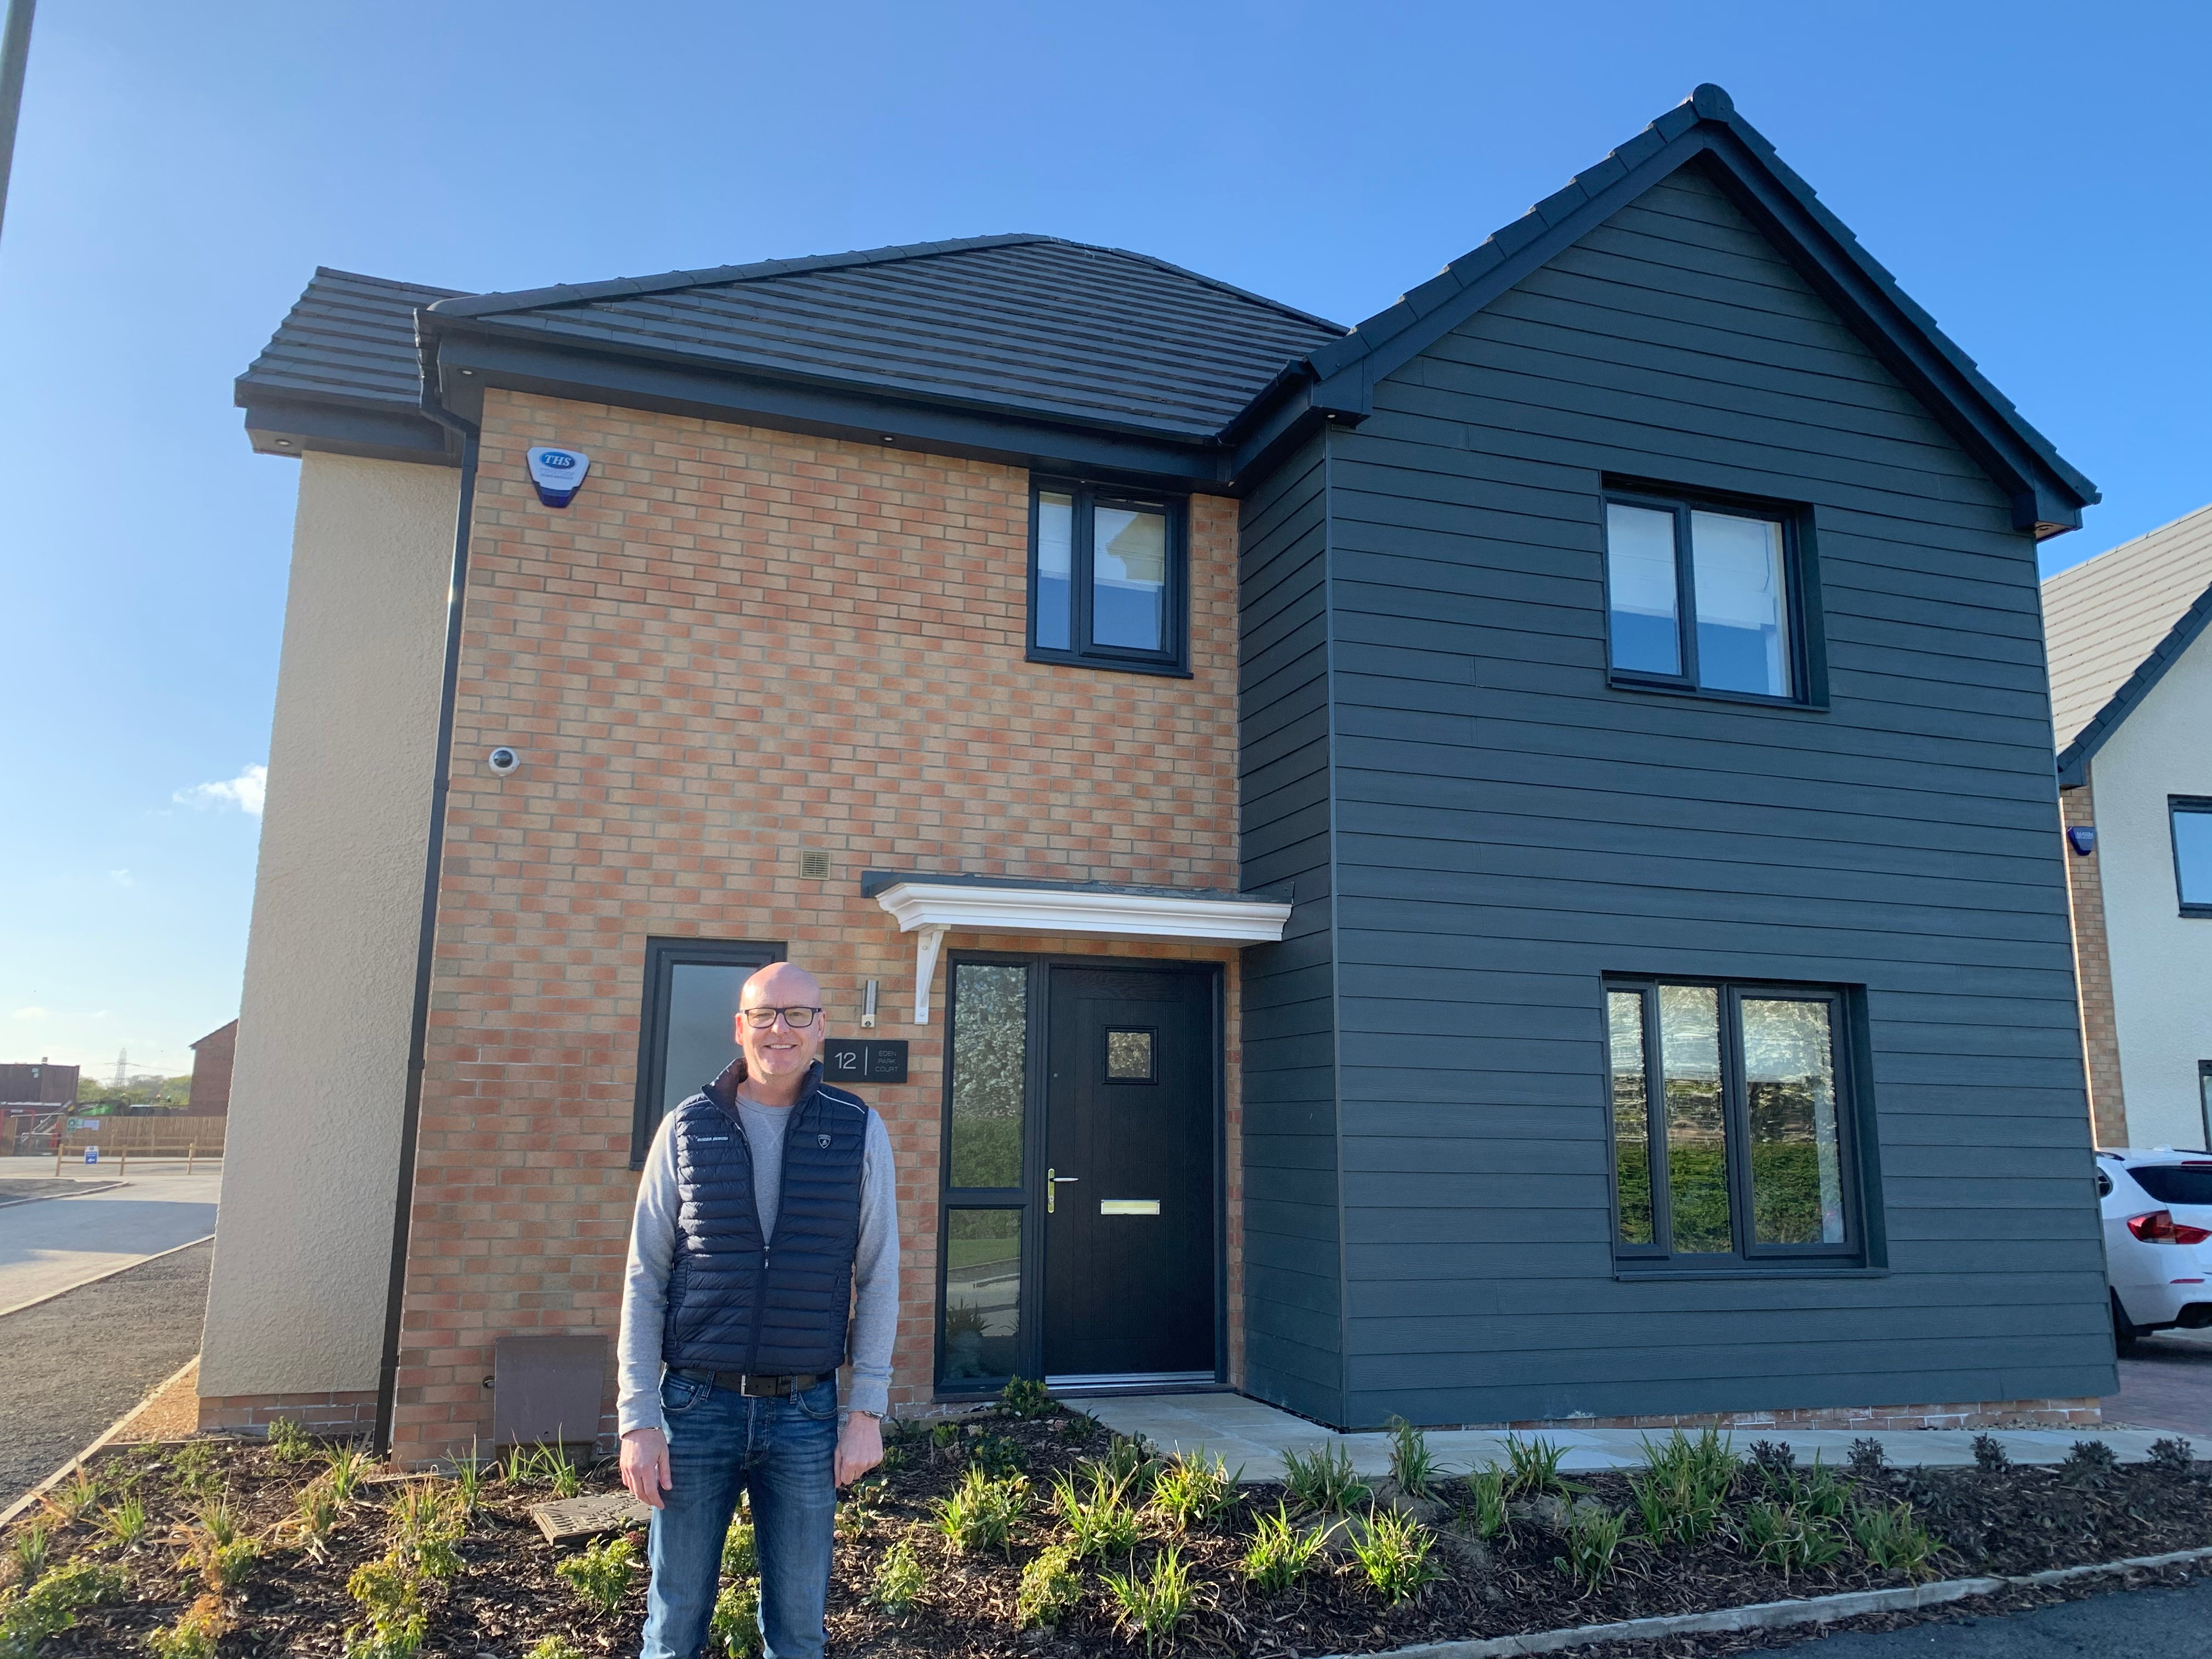 Paul Nowlin outisde his new Taylor Wimpey Home at Kenton Bank Mill Kingston Park